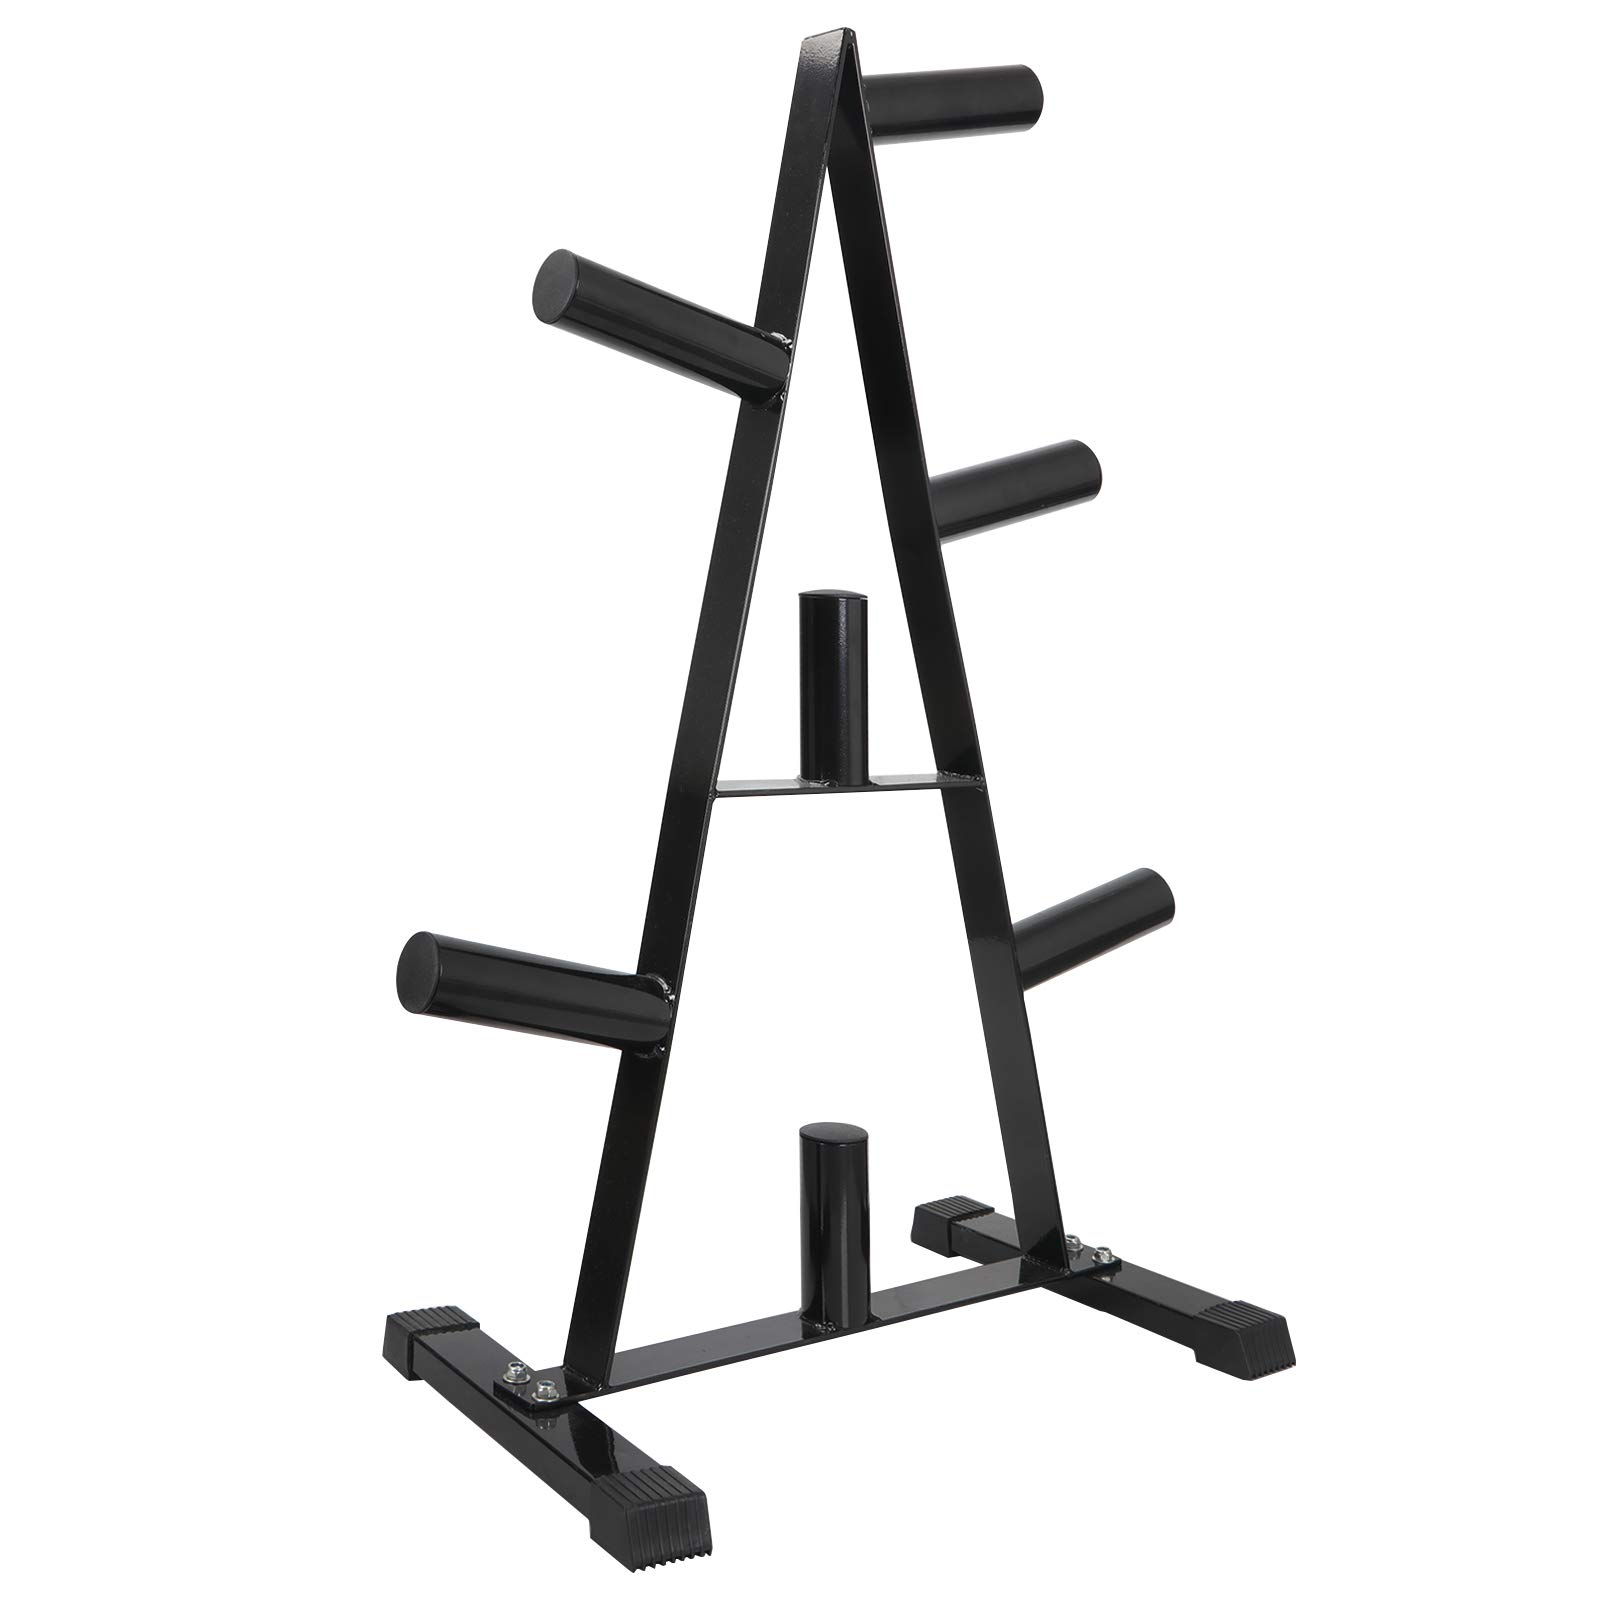 ZENSTYLE A-Frame Barbell Plate Rack - Standard 2-Inch Heavy Duty Olympic Plate Tree Weight Plate Stand (Black)